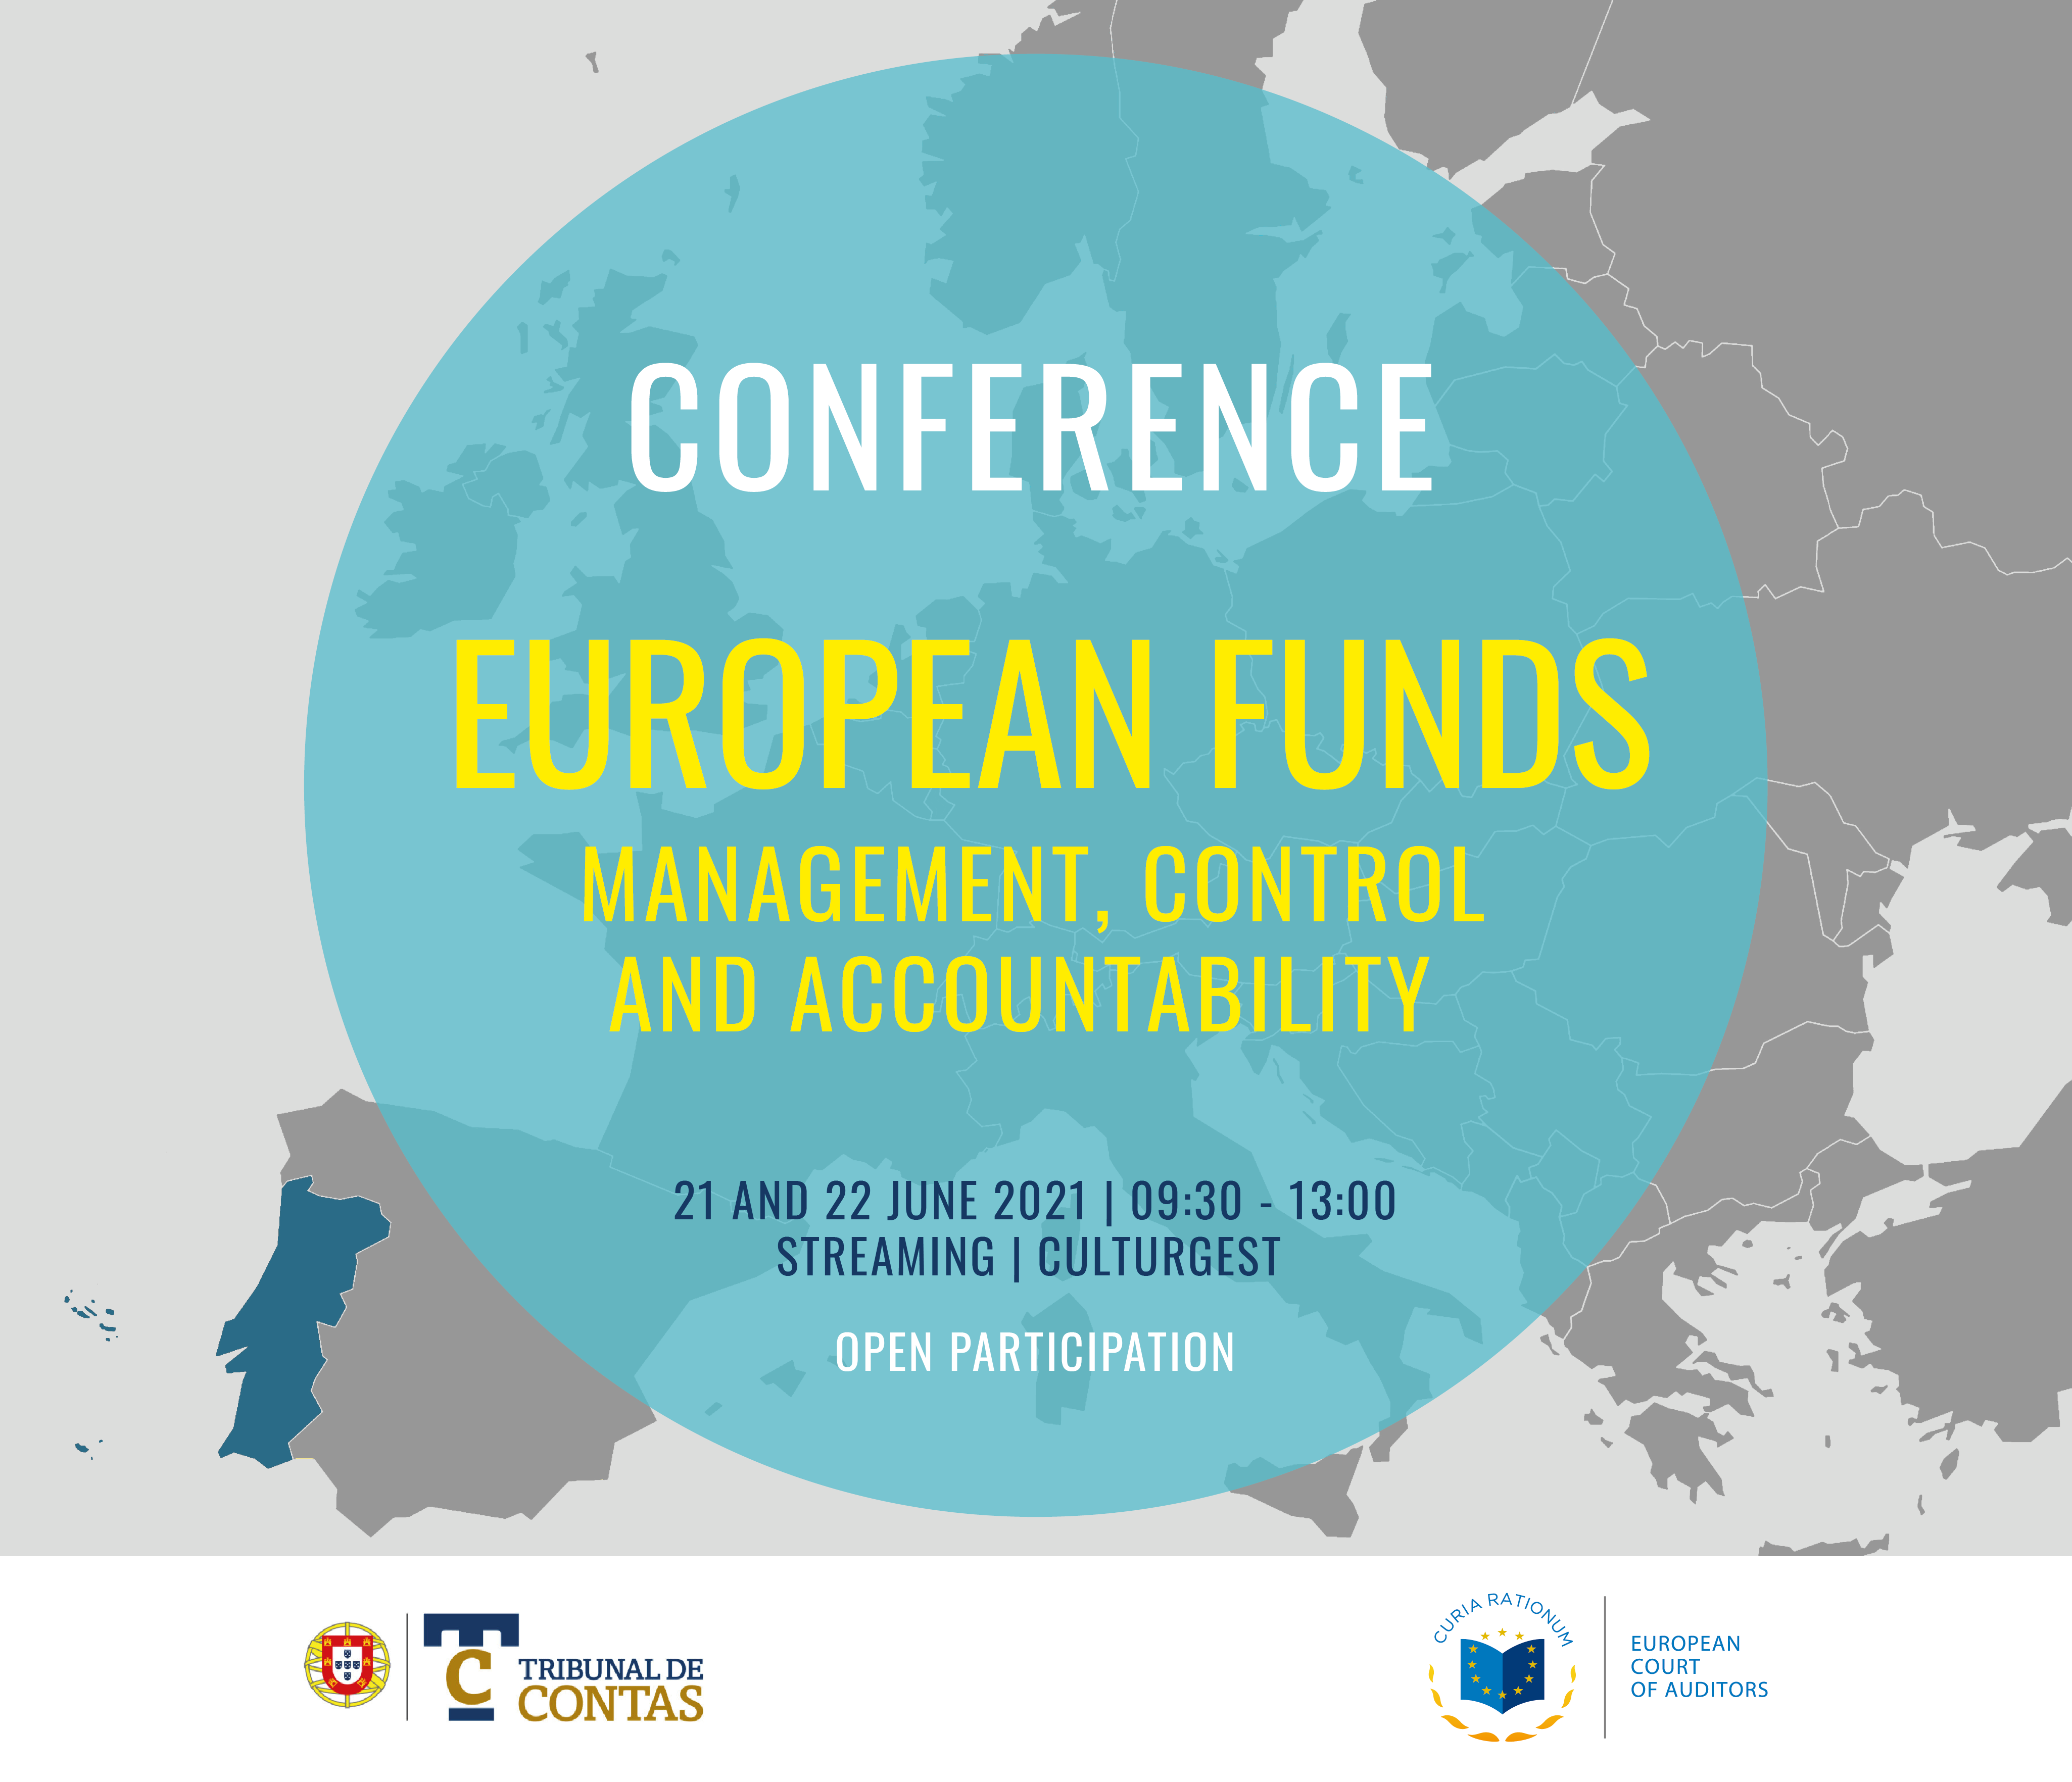 """Invitation: """"European Funds: Management, Control and Accountability"""" conference on 21-22 June 2021"""